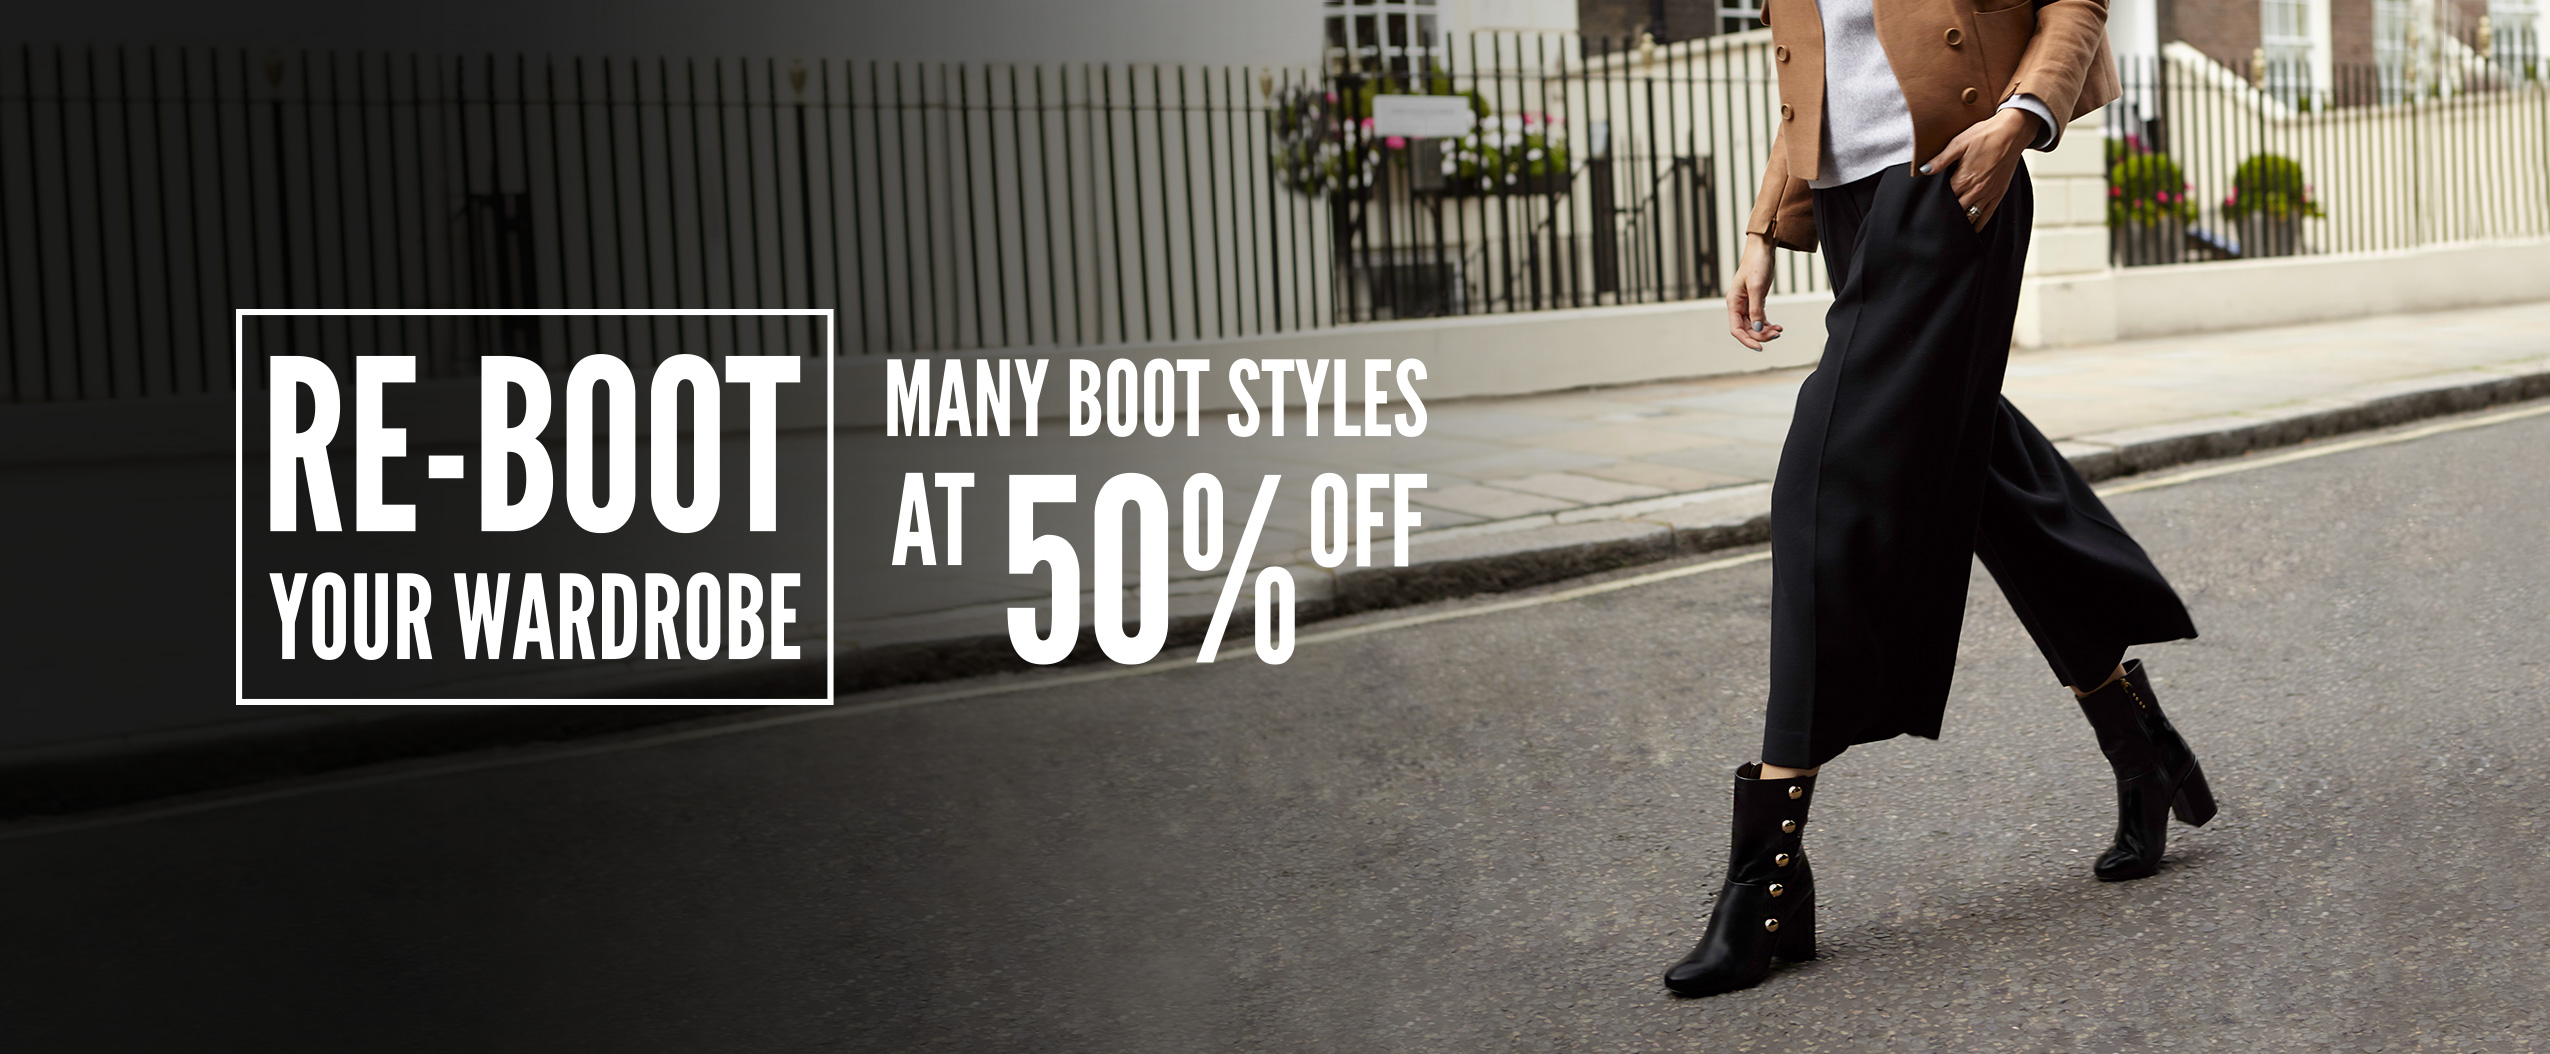 Re-Boot your wardrobe: Many boot styles at 50% off